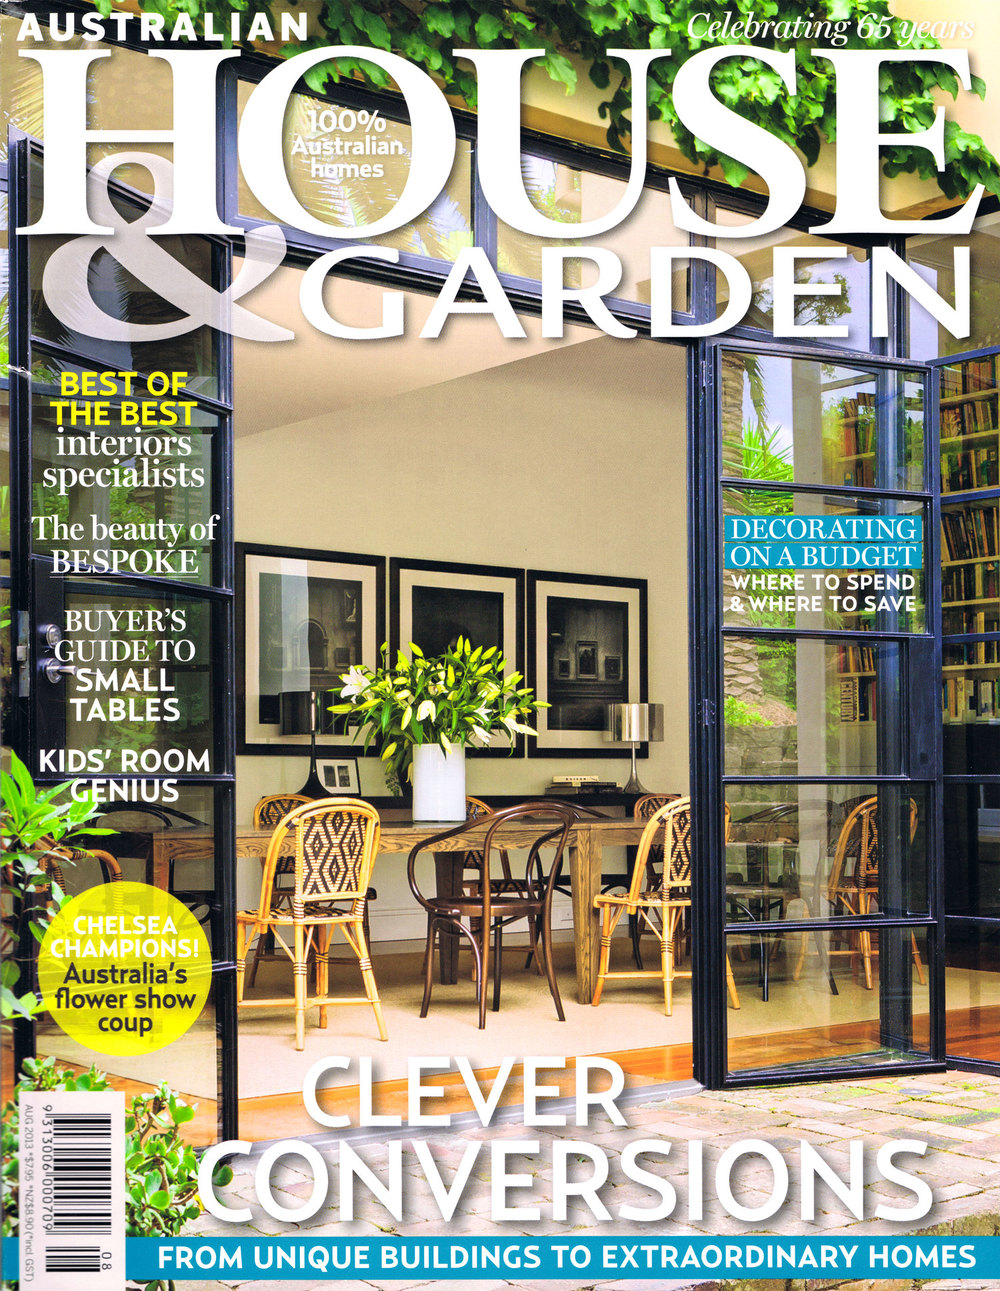 Australian-House-and-Garden-August-2013-cover.jpg